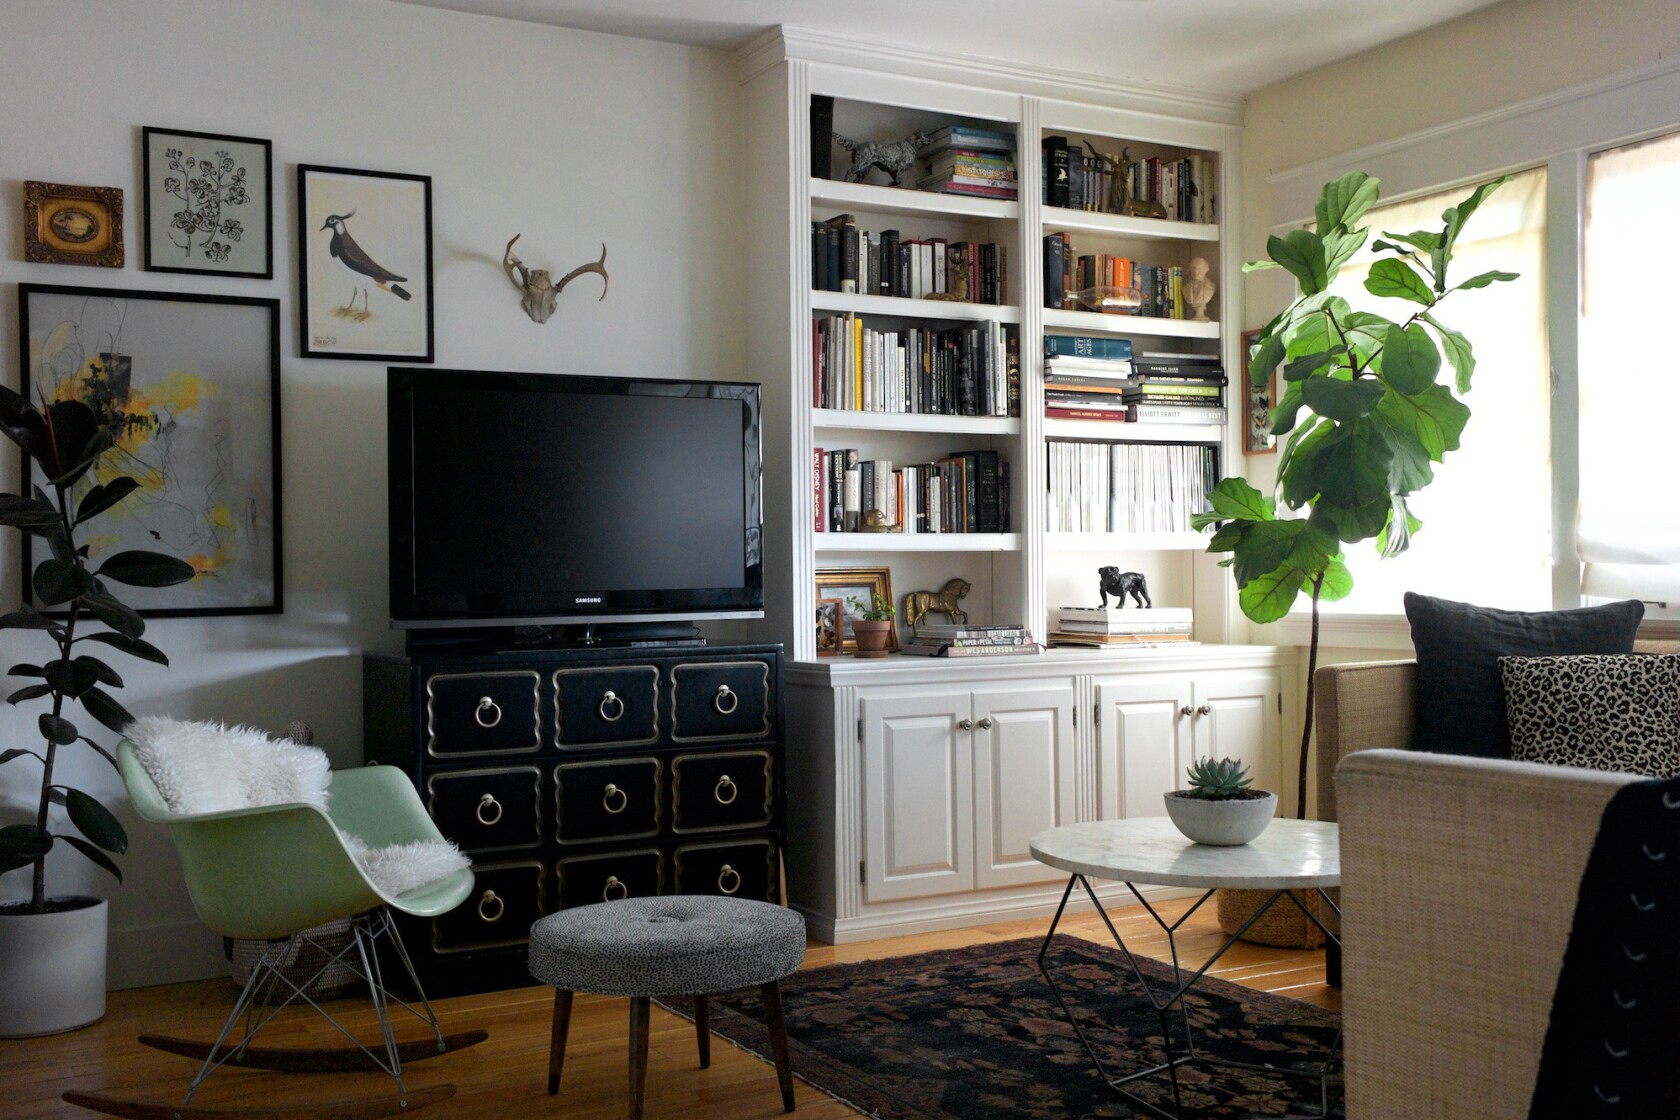 How to make 800 square feet feel twice the size - Los